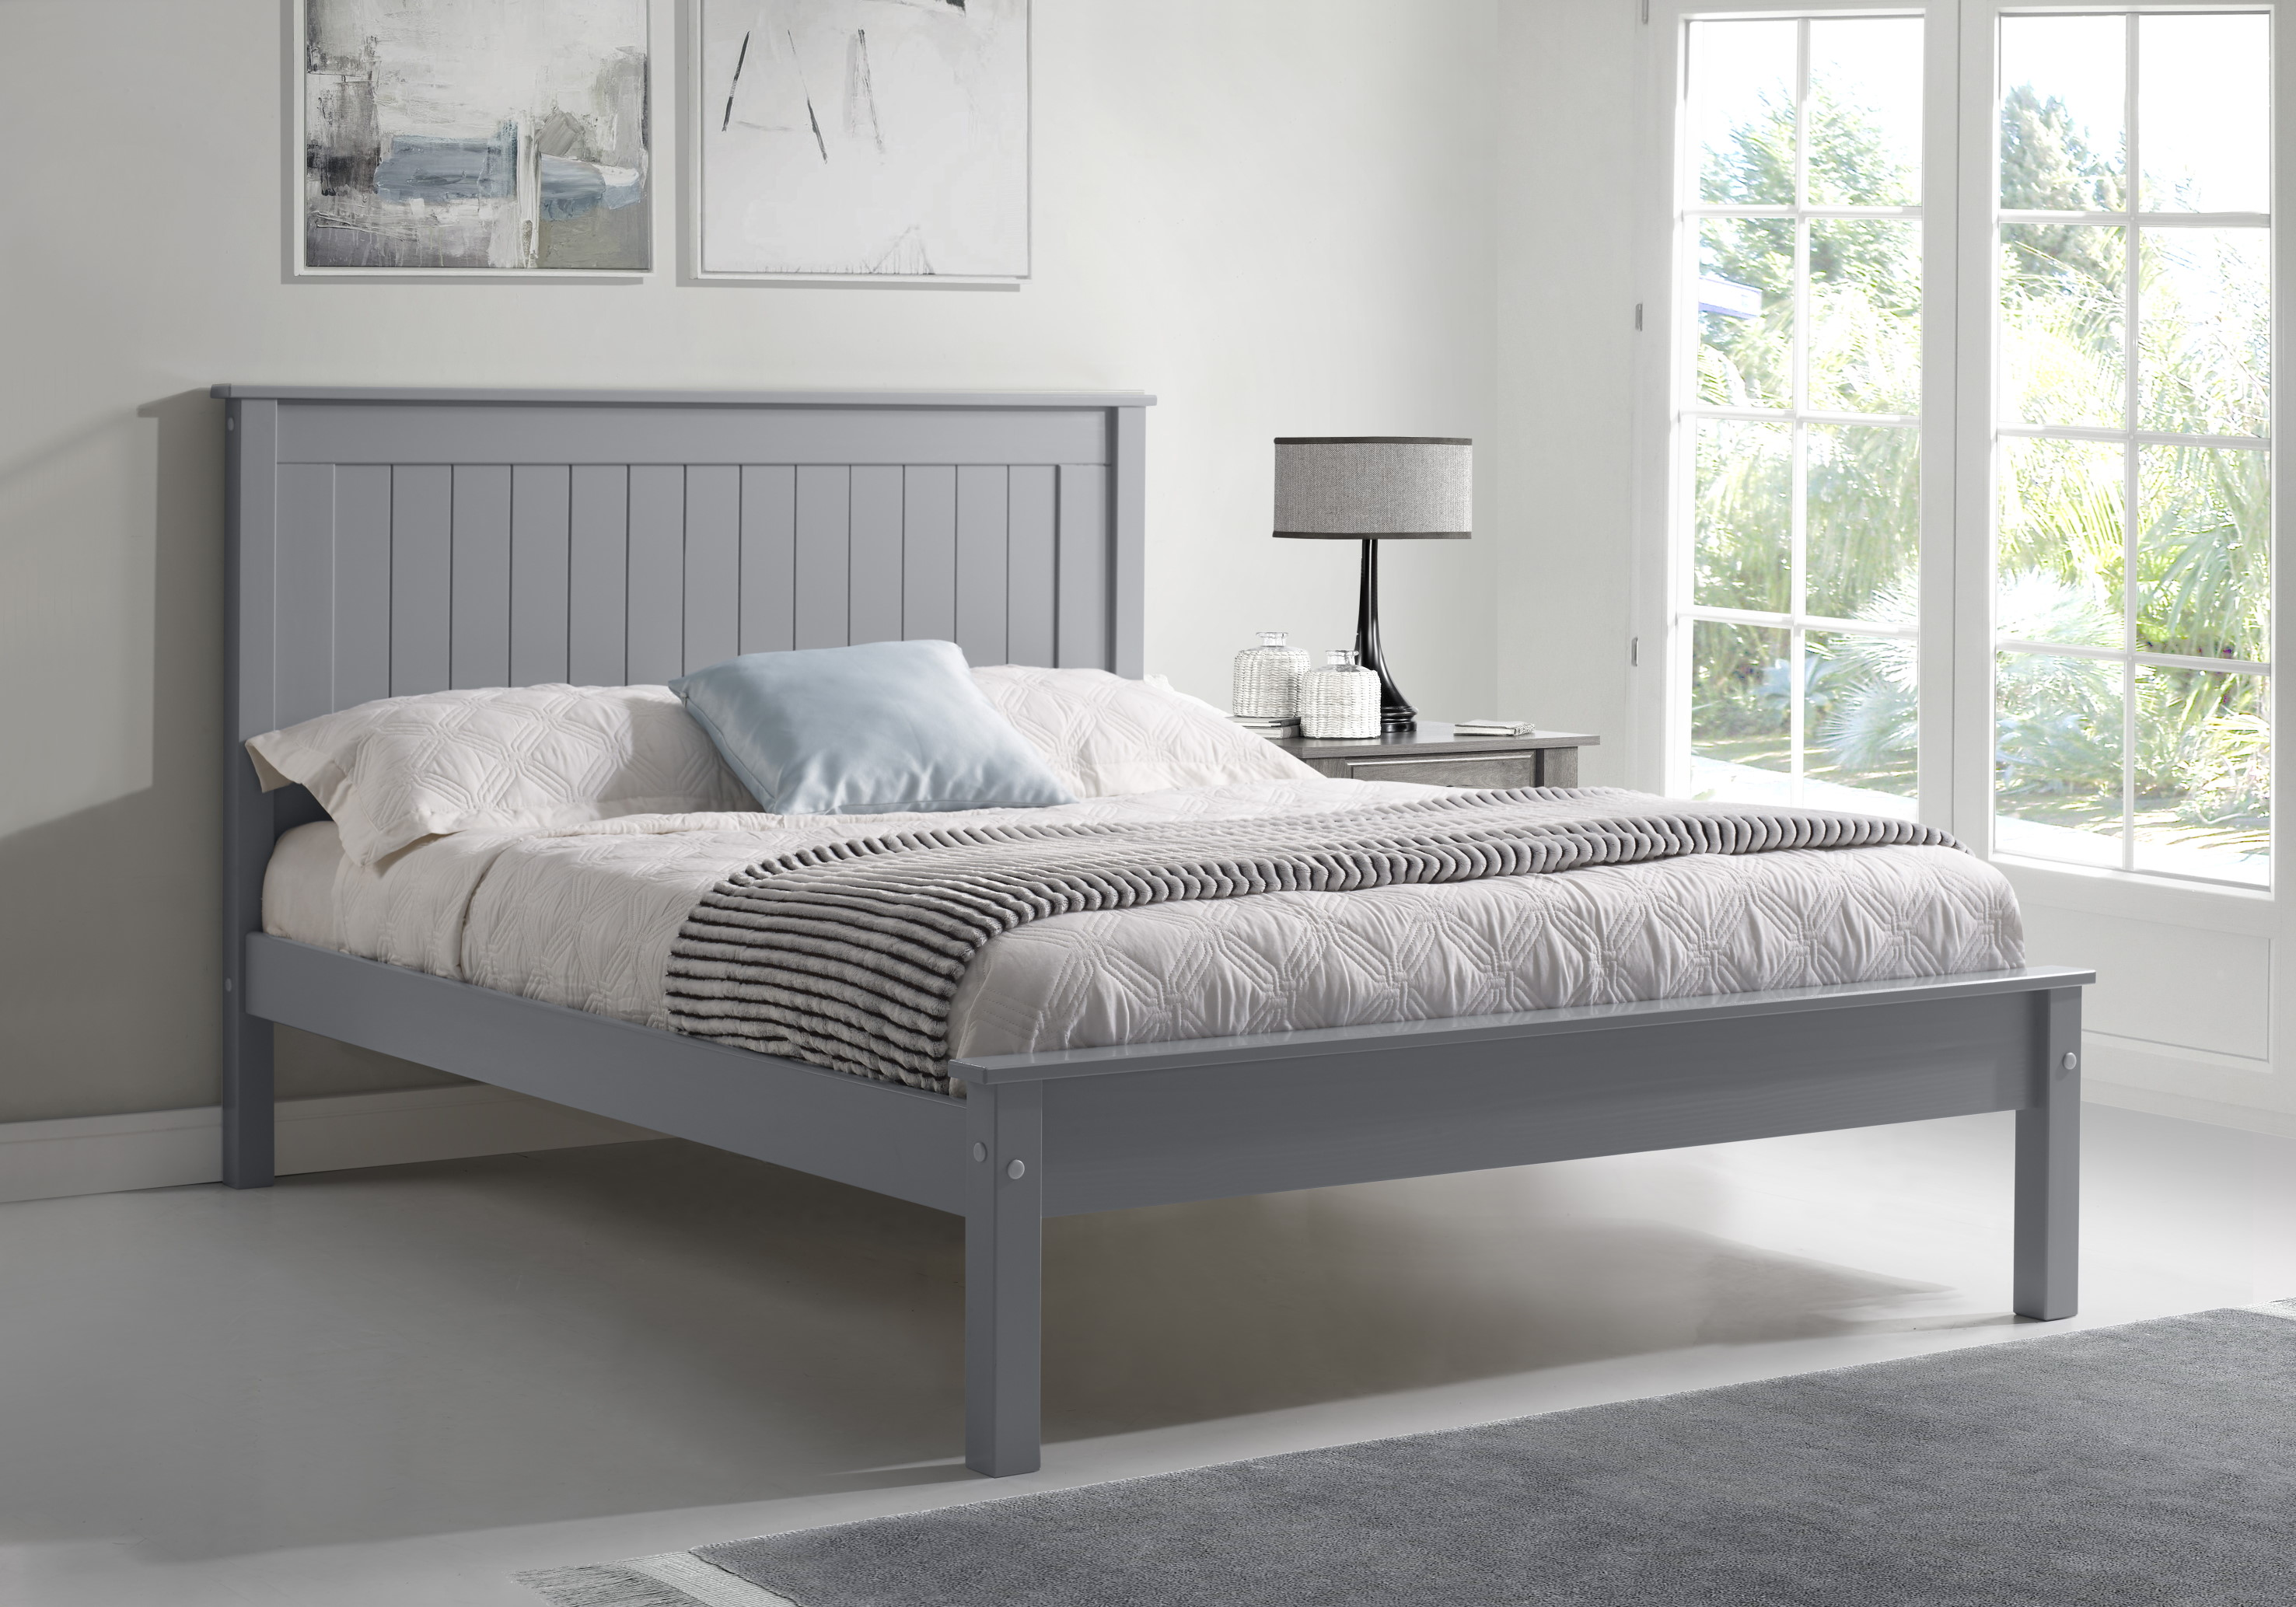 4ft6 Double Torre Grey Painted Wood Bed Frame Low Foot End Helibeds